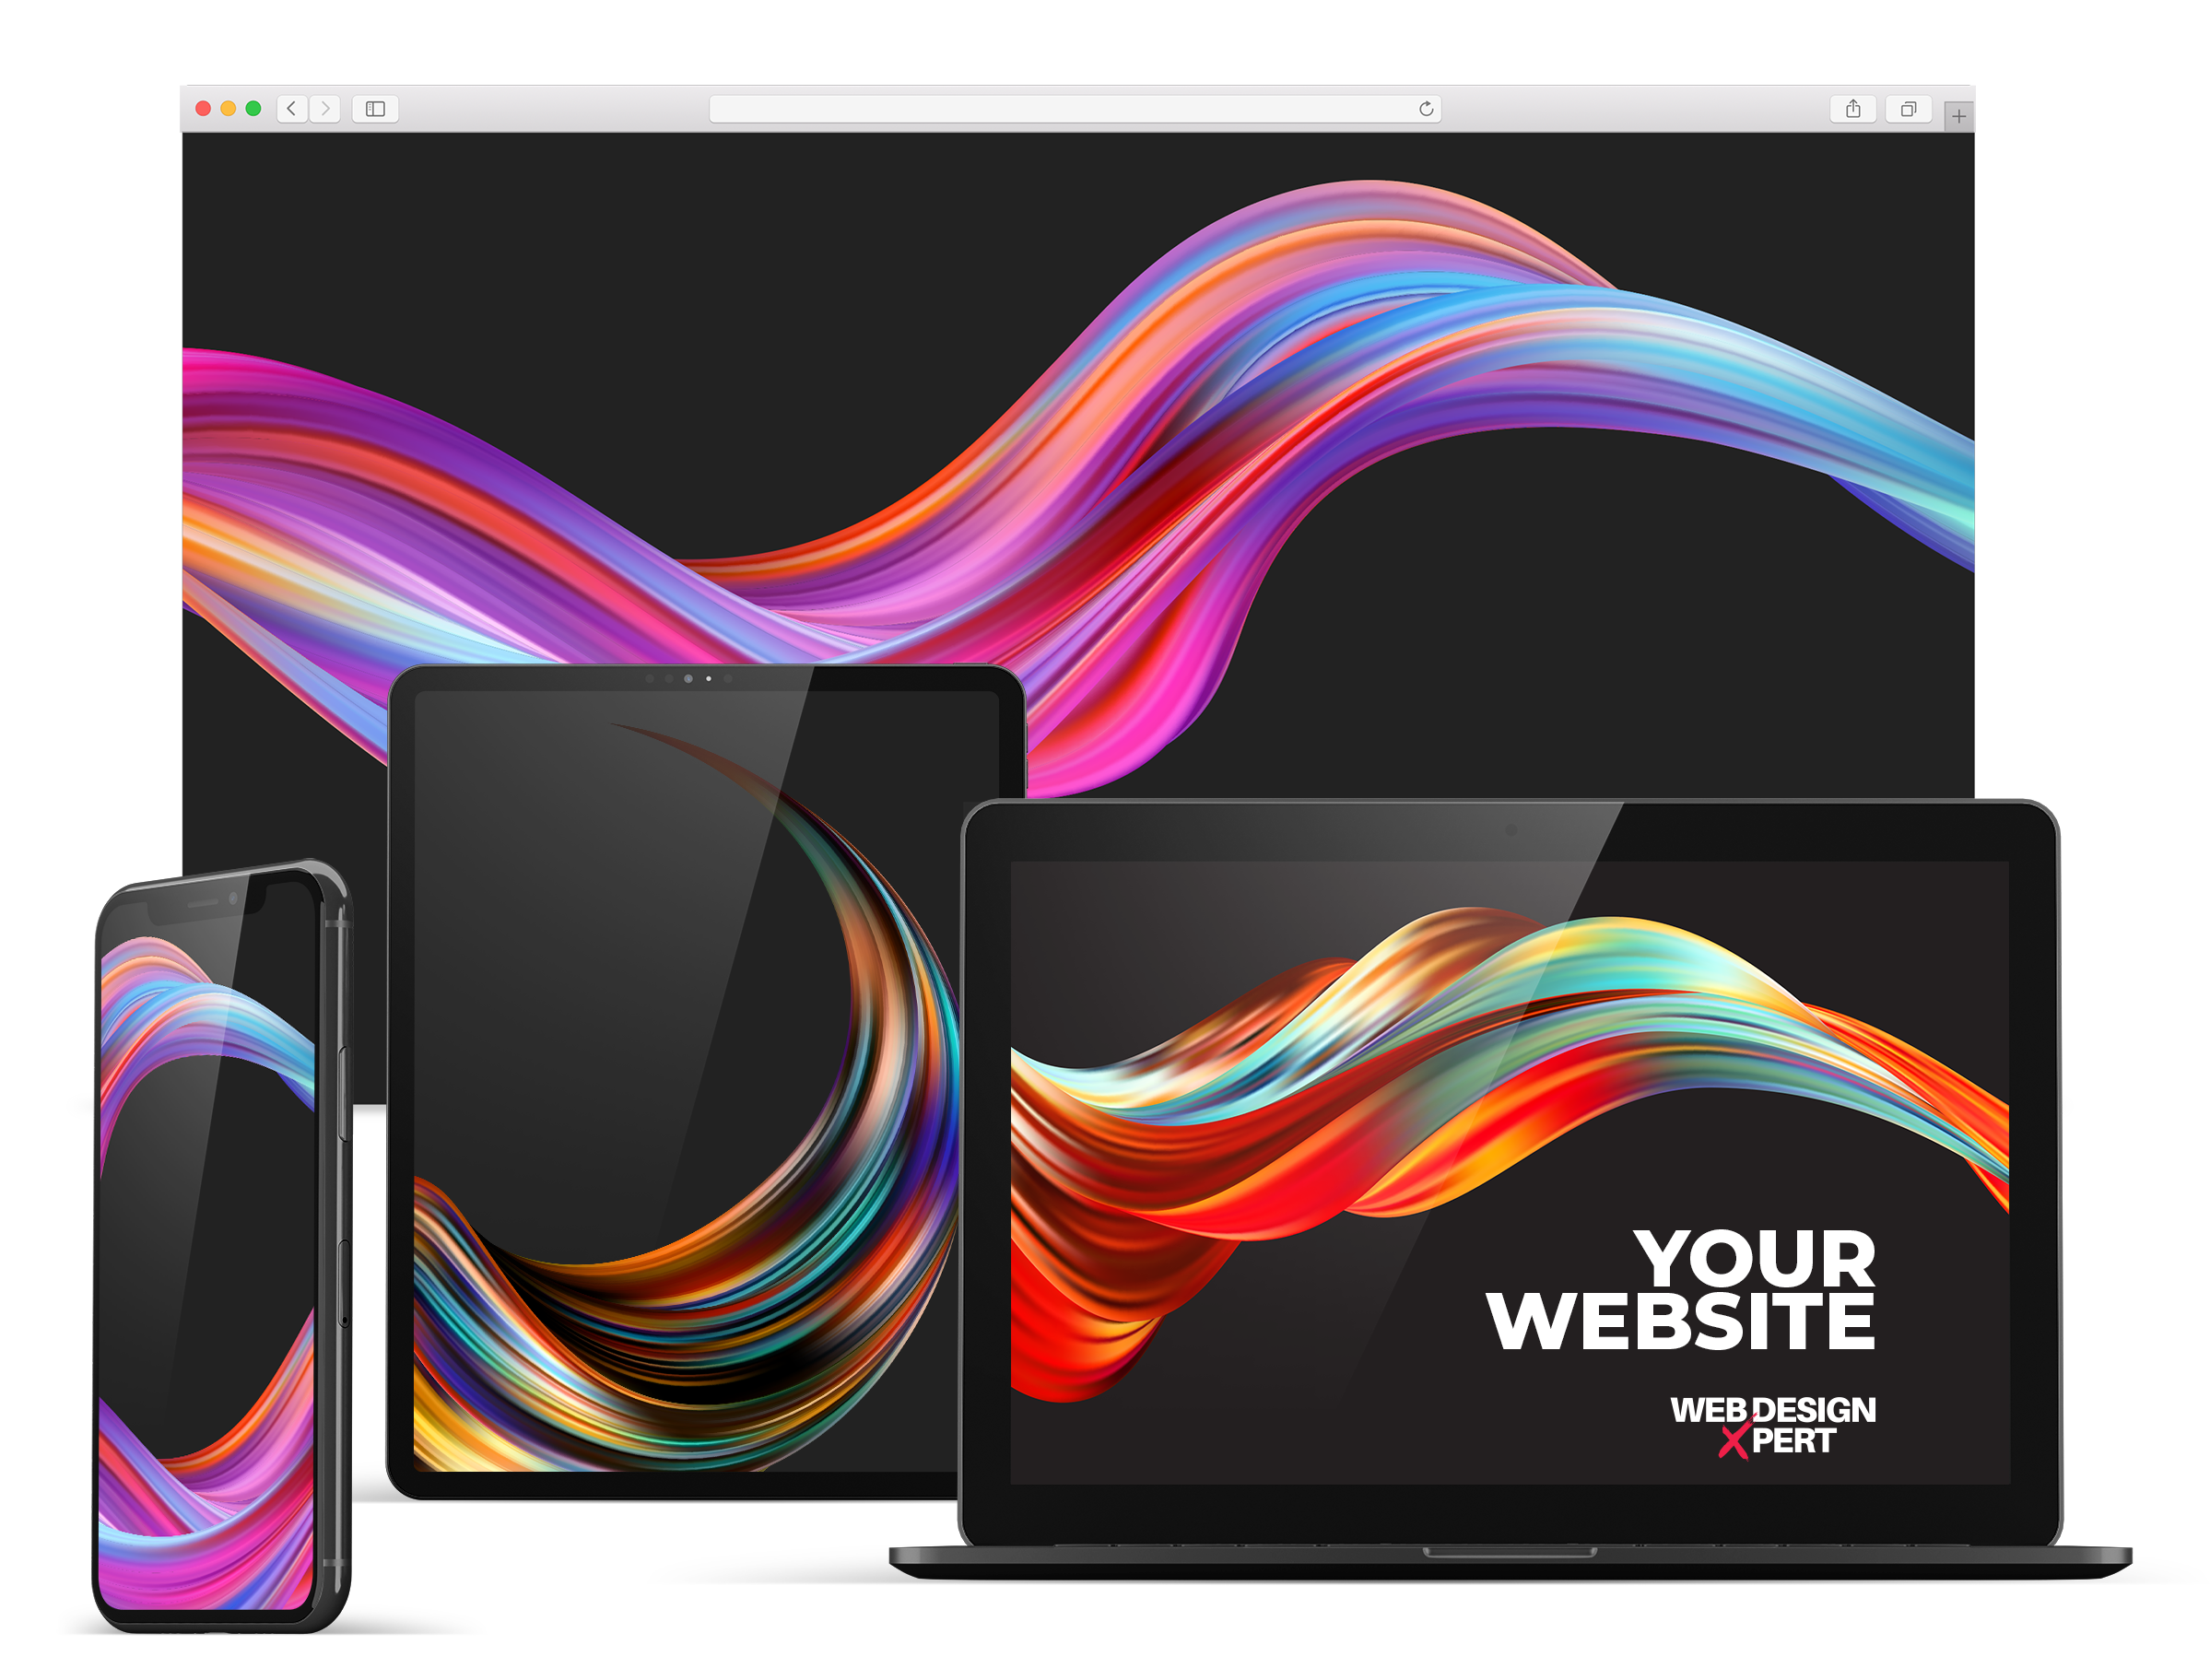 Los Angeles Web Design Agency, Web Design Xpert, Launches Affordable Custom Web Design Packages with WordPress Web Design